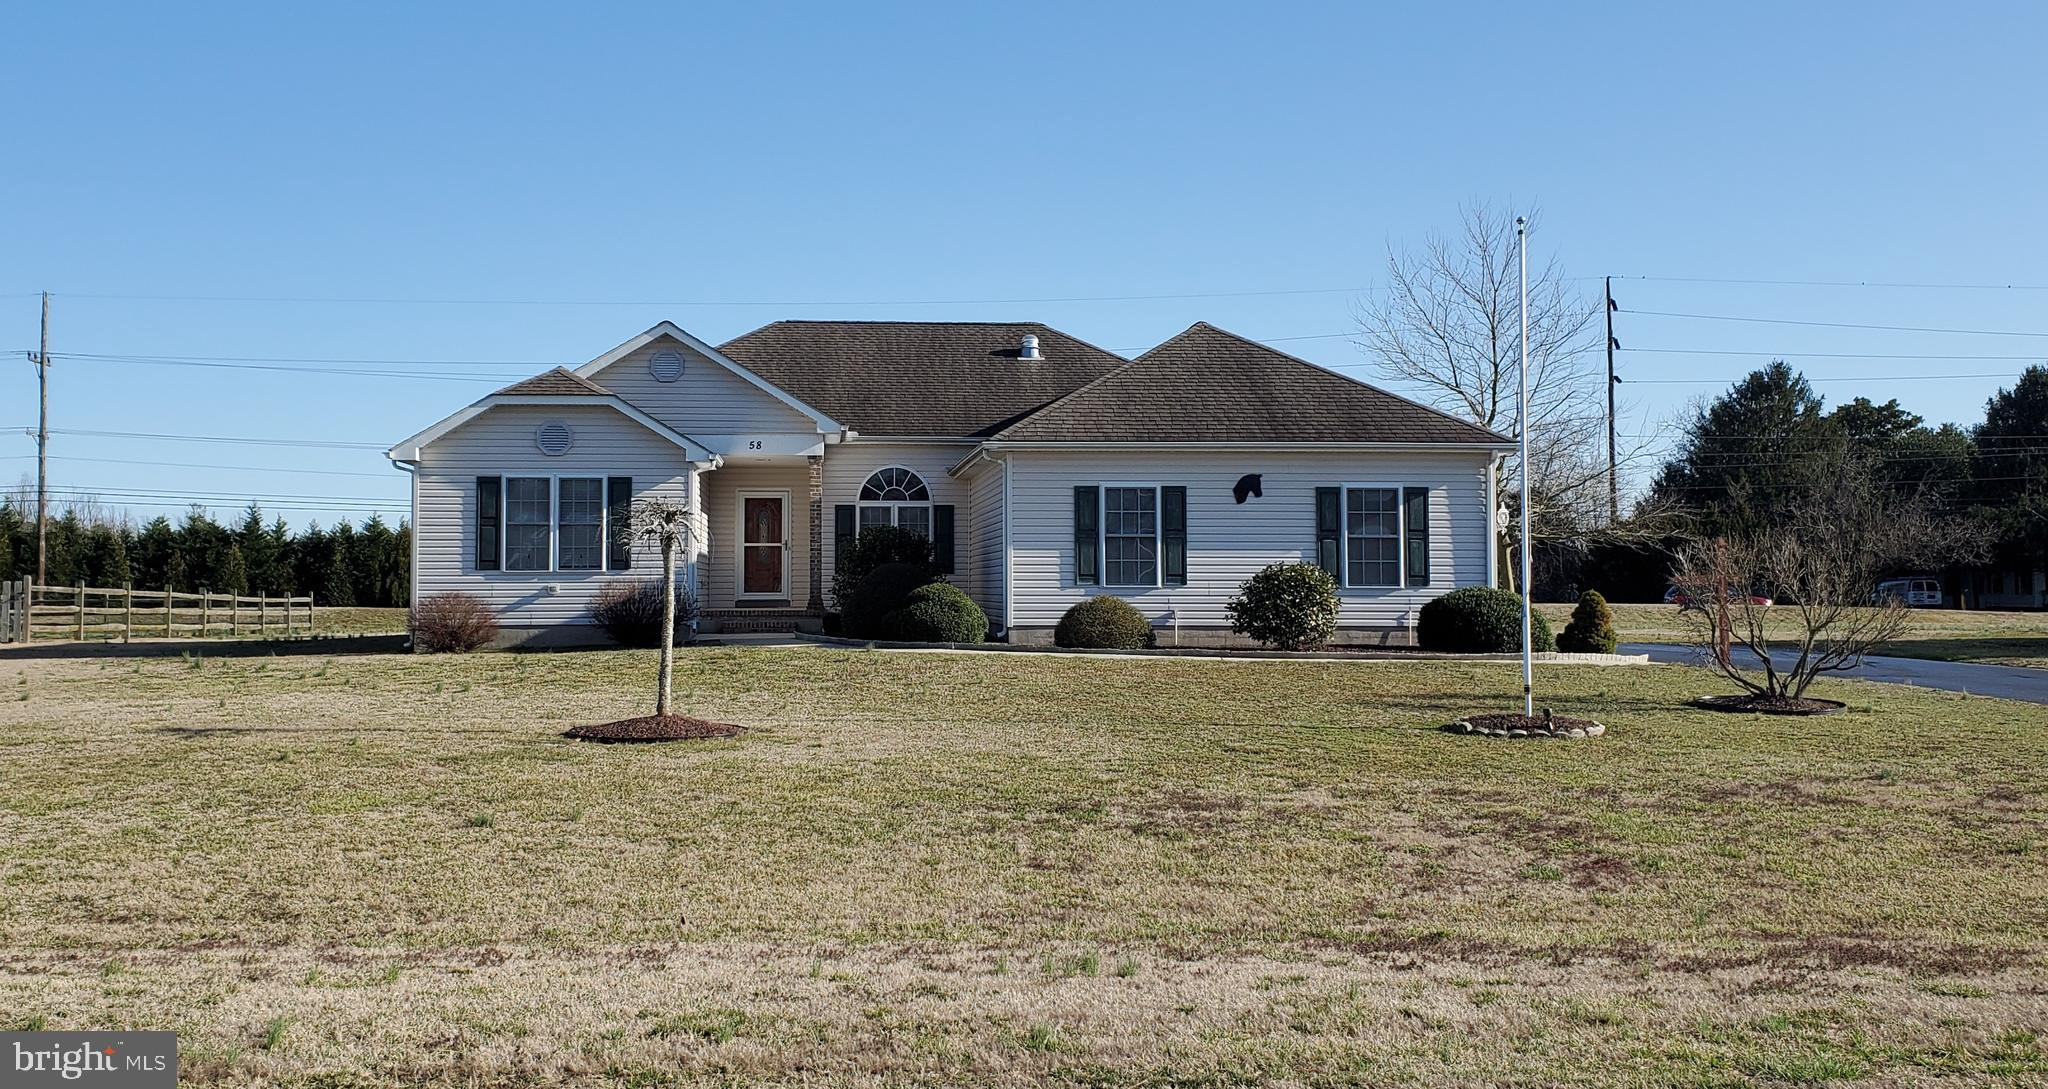 Ready for a new owner, this 3 bedroom 2 bath, open floor plan home is ready.  The main bedroom is fantastic:  21 x 14 with bath that features walk in show, jetted tub, double sink and make up area and water closet,   The walk in closet is large and has organizational shelving.   The kitchen boast bar and island area and lots of cabinets.  This development offers natural gas, community water, and your trash collection is included in your county taxes.  This development is not in city limits so no city taxes here.  The community also offer street lights for your evening walks.  This 2,050 square foot home also boast over sized garage and covered deck.    Septic has been checked out and all is well.  Call today for your tour of this home.  Harrington address but, it is located in Milford School Dist.